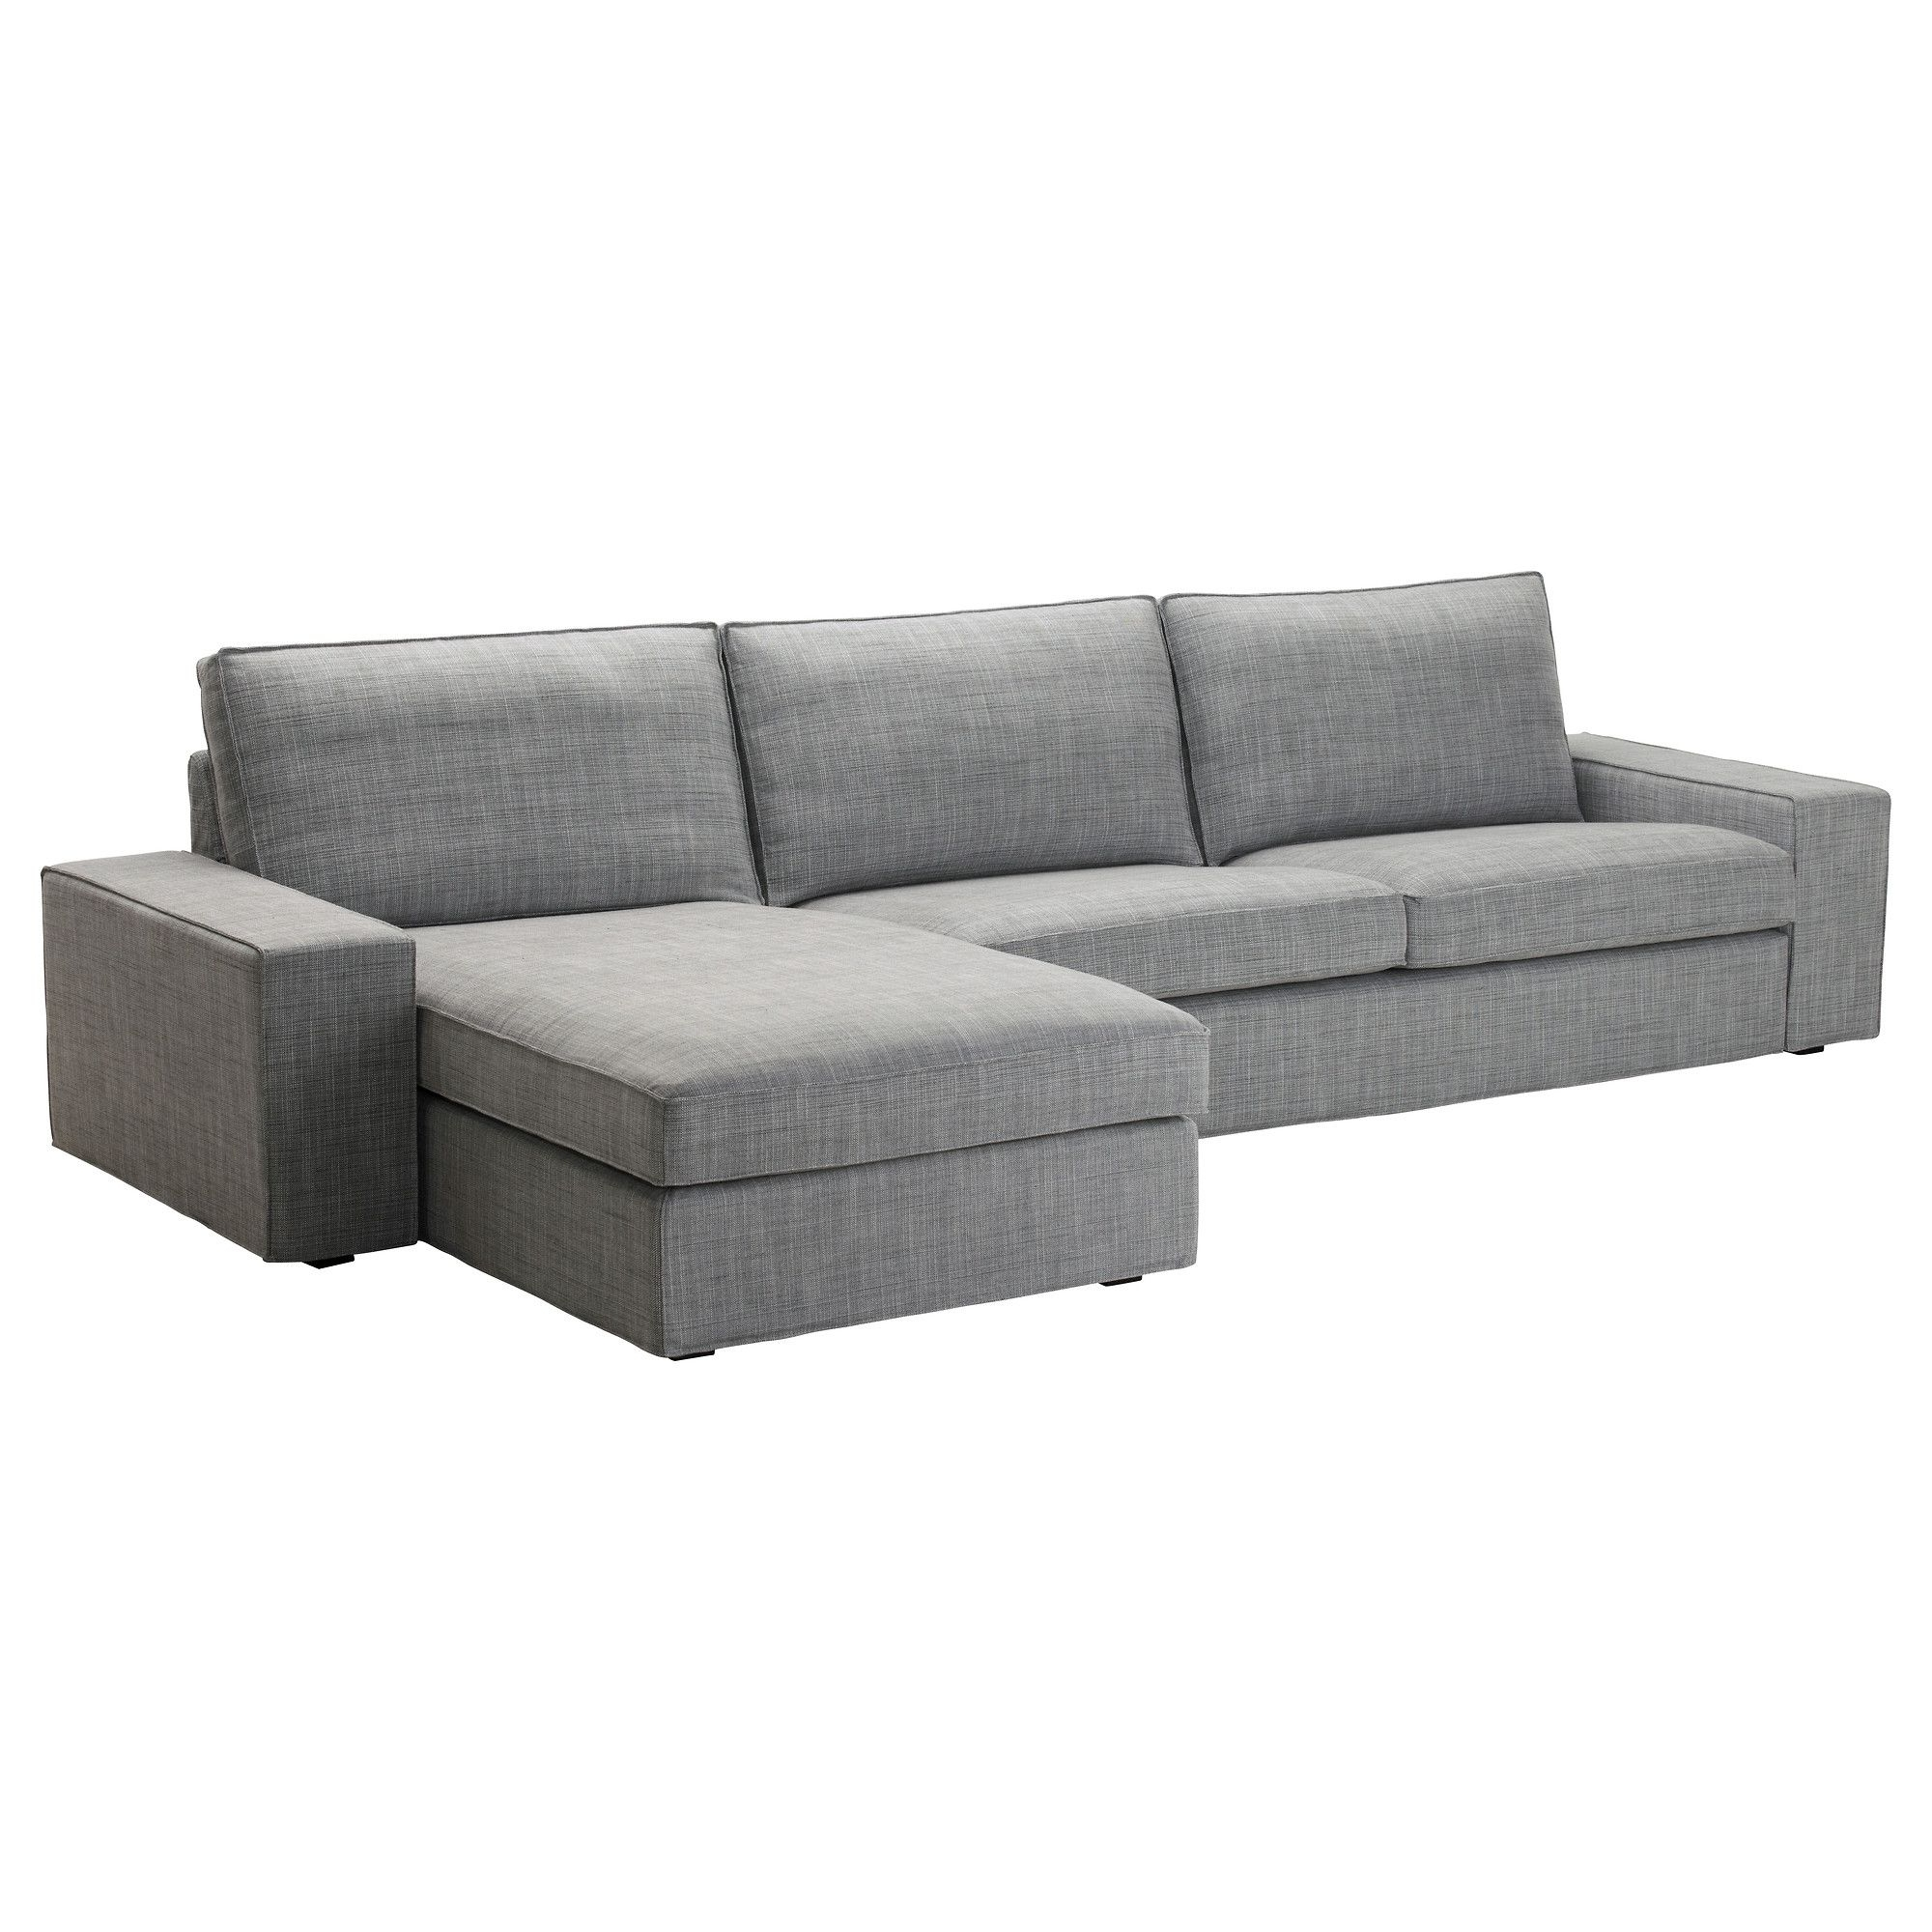 Want Throughout Newest Ikea Chaise Couches (View 15 of 15)